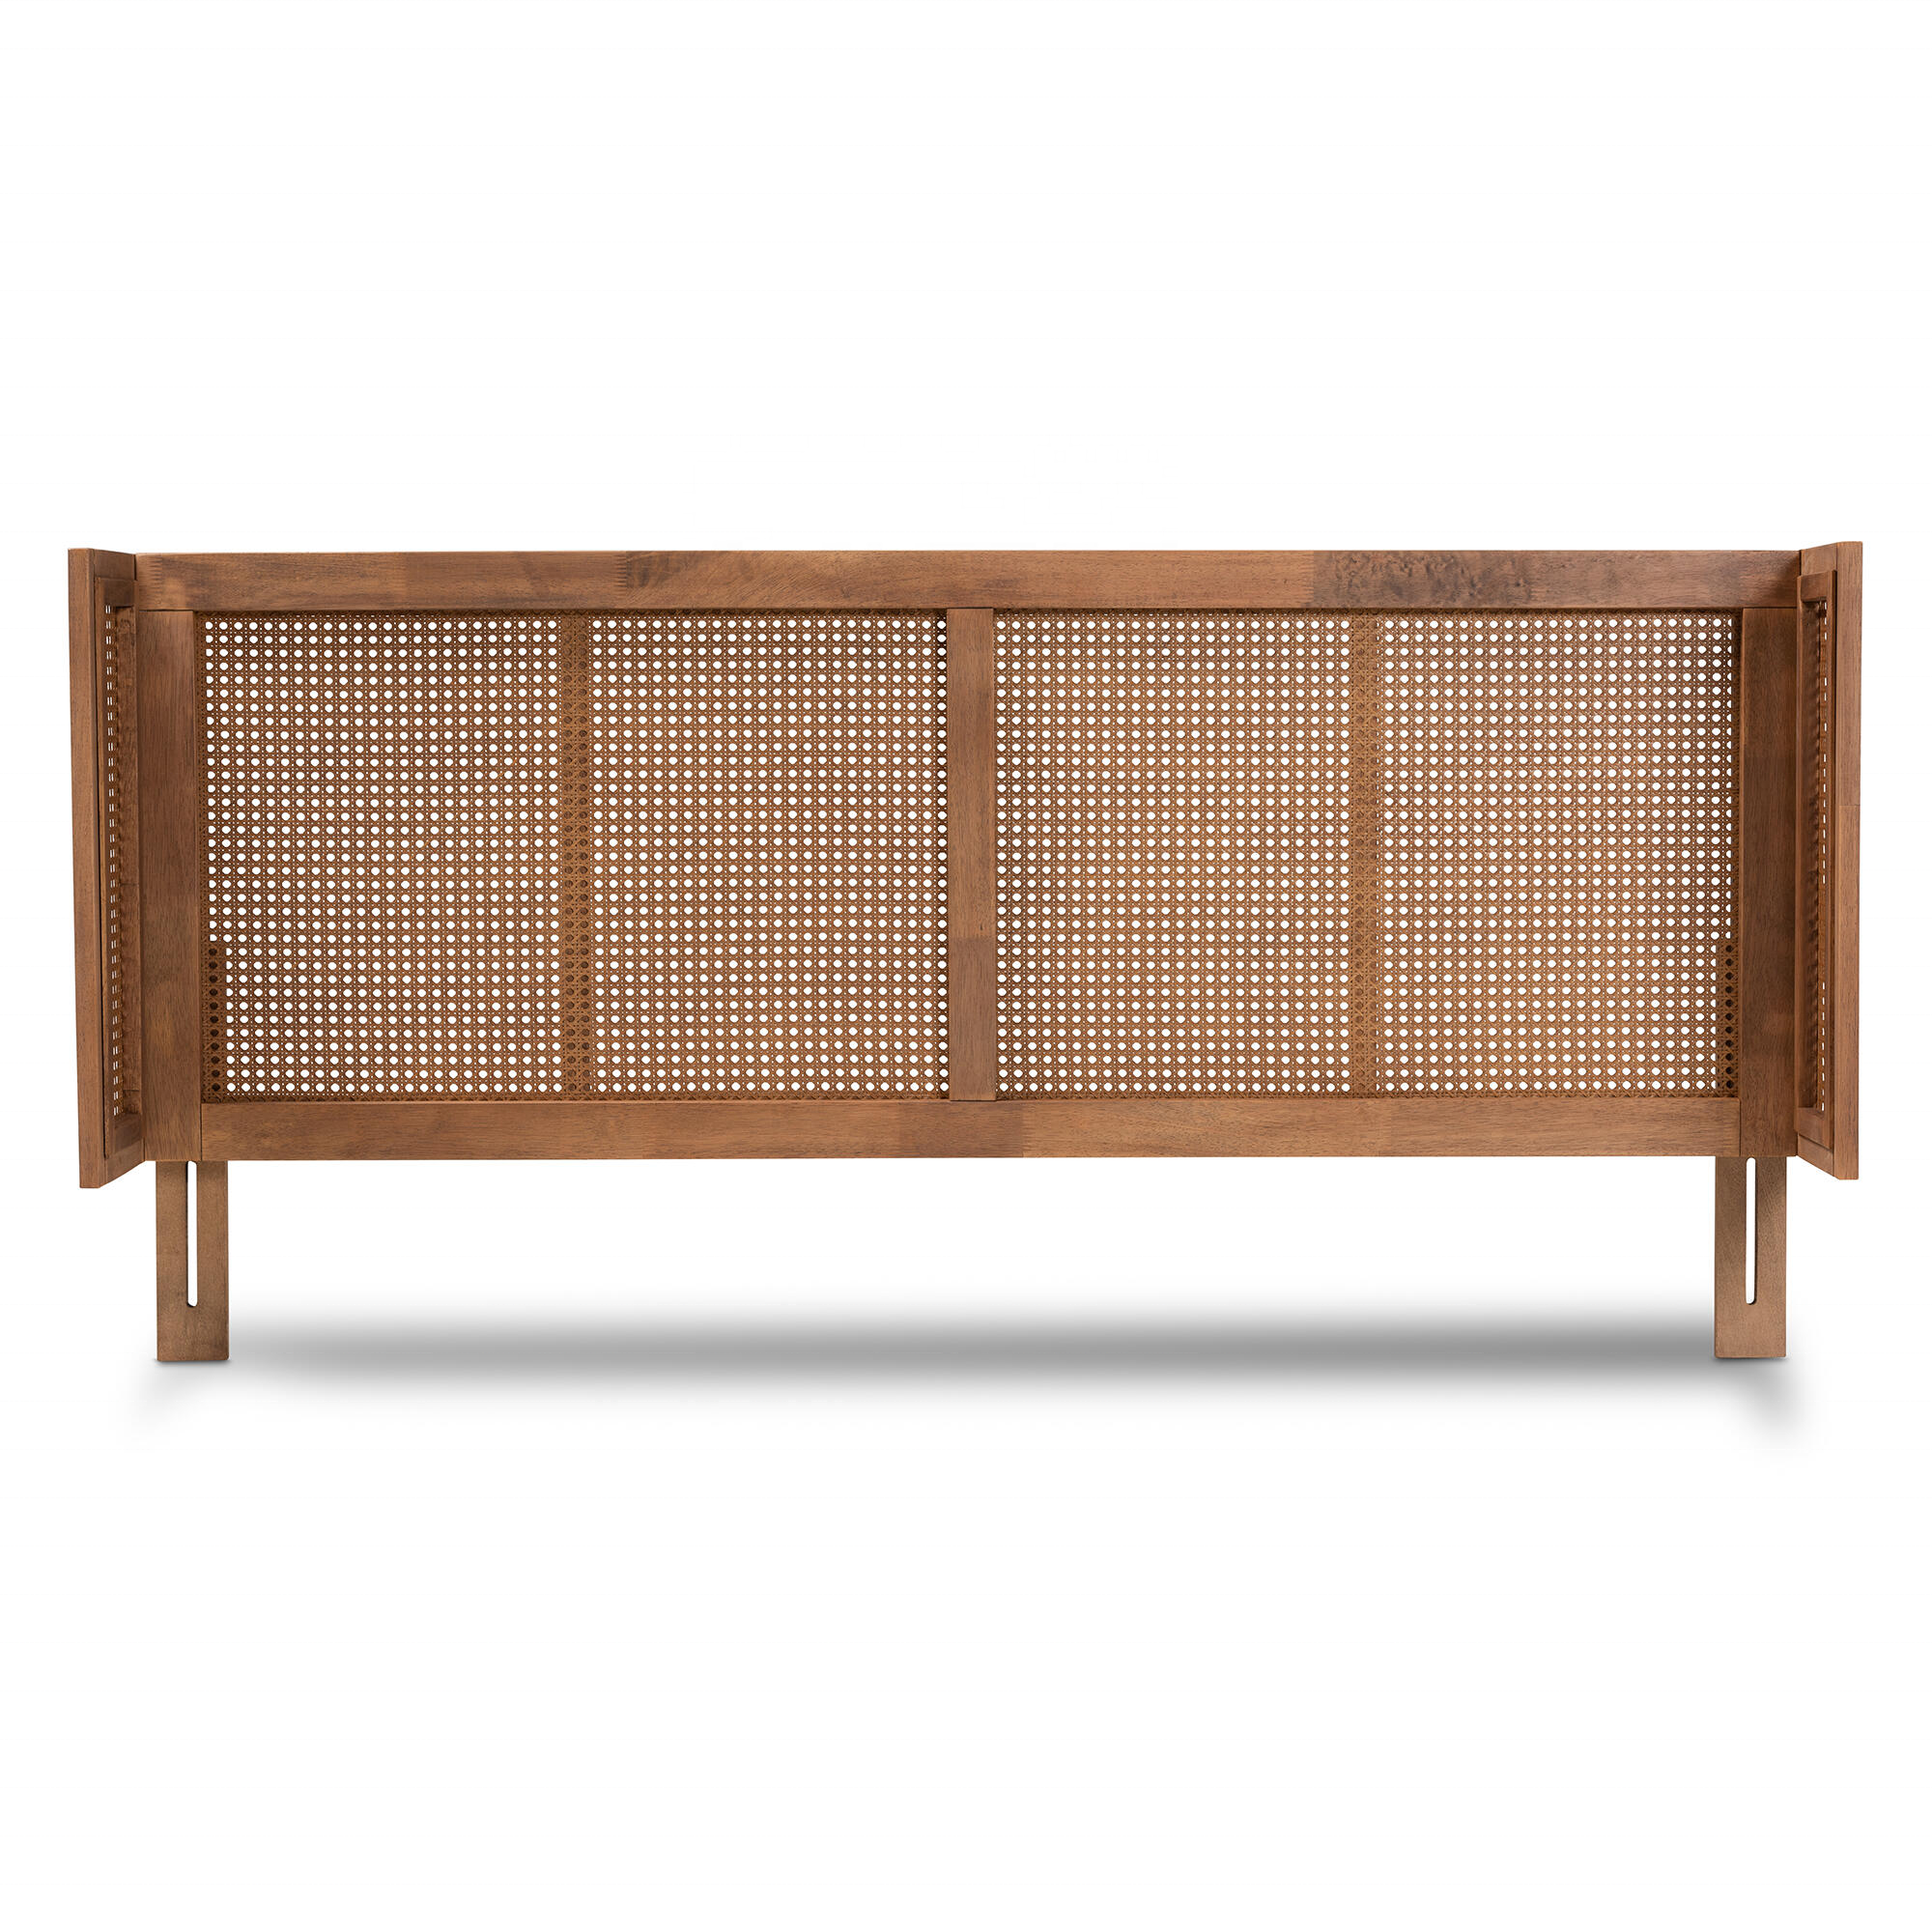 Vintage French Style Natural Rattan Cane Wooden Headboard